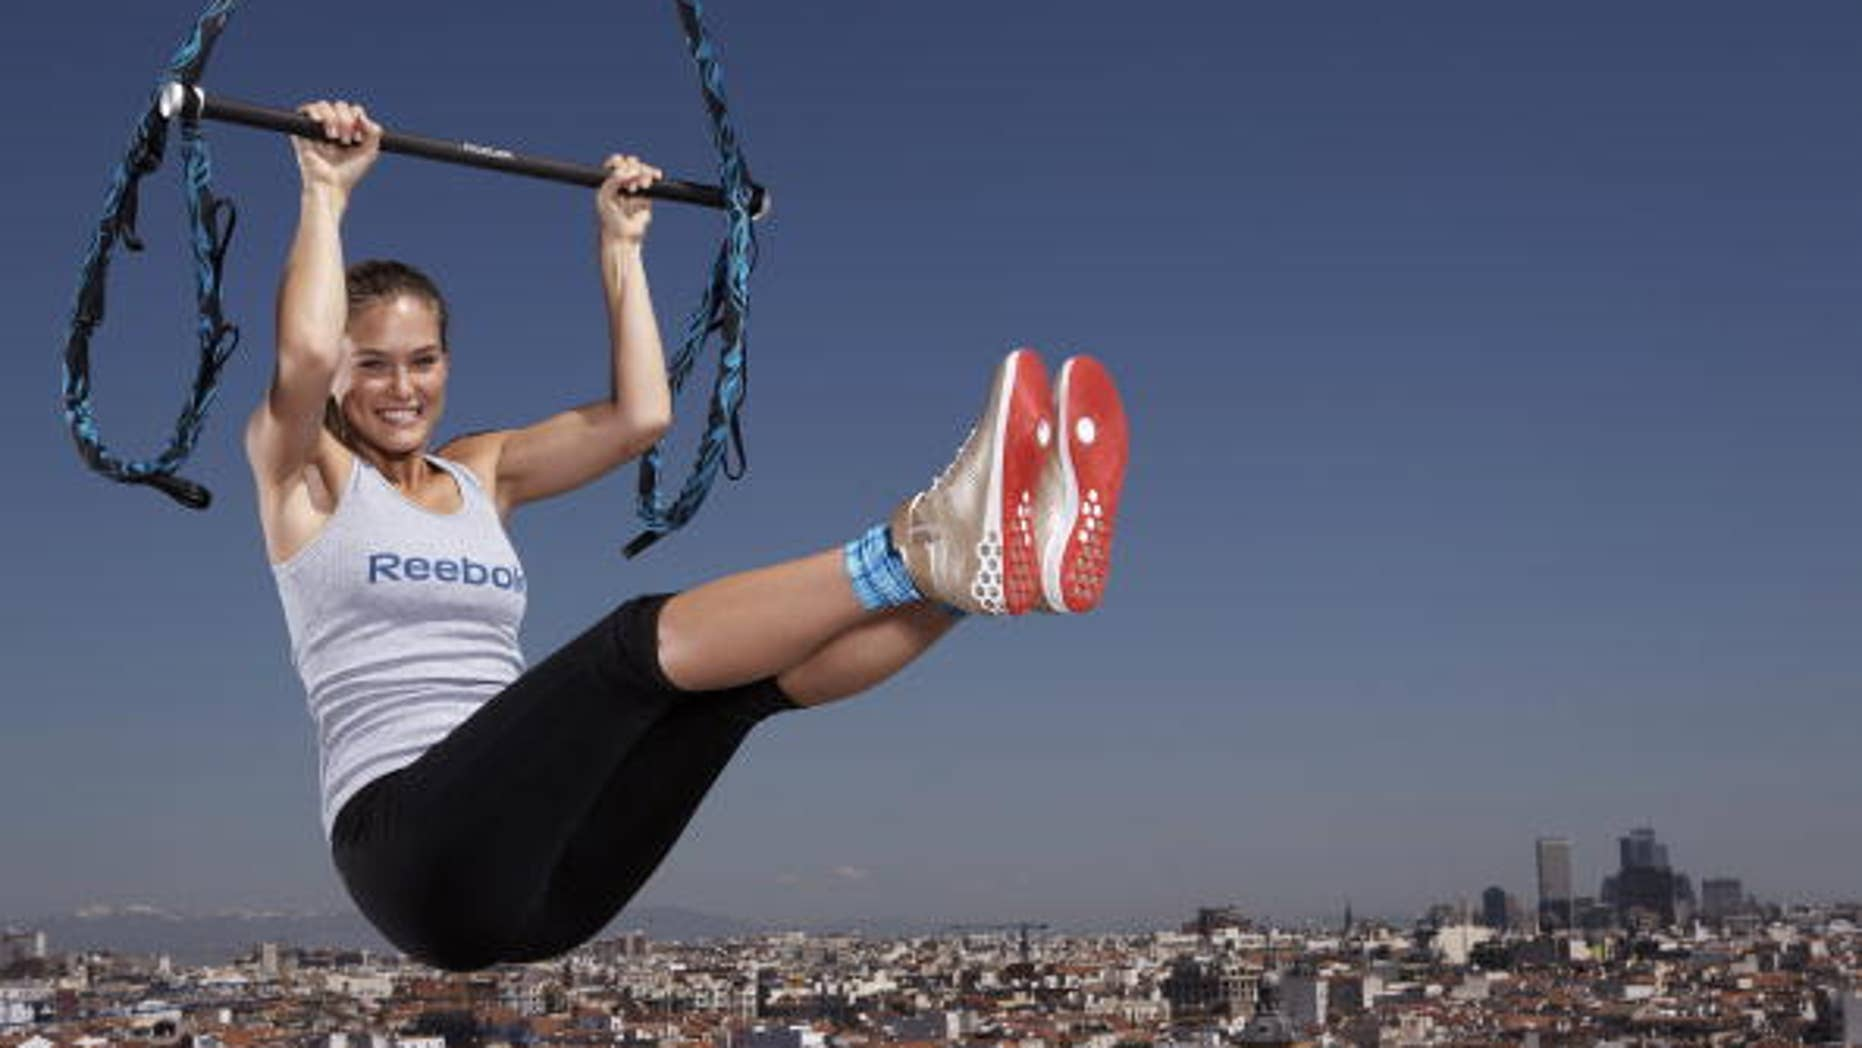 MADRID- SPAIN - MAY 6:  (ONLY AVAILABLE FOR USE IN EUROPE , ISRAEL, UAE  & SOUTH AFRICA) Supermodel Bar Refaeli launches Reebok's and Cirque du Soleils revolutionary new workout for women, 'Jukari Fit to Fly', at a media event on May 6, 2009 in Madrid, Spain.  (Photo by Gary Prior/Getty Images for Reebok)